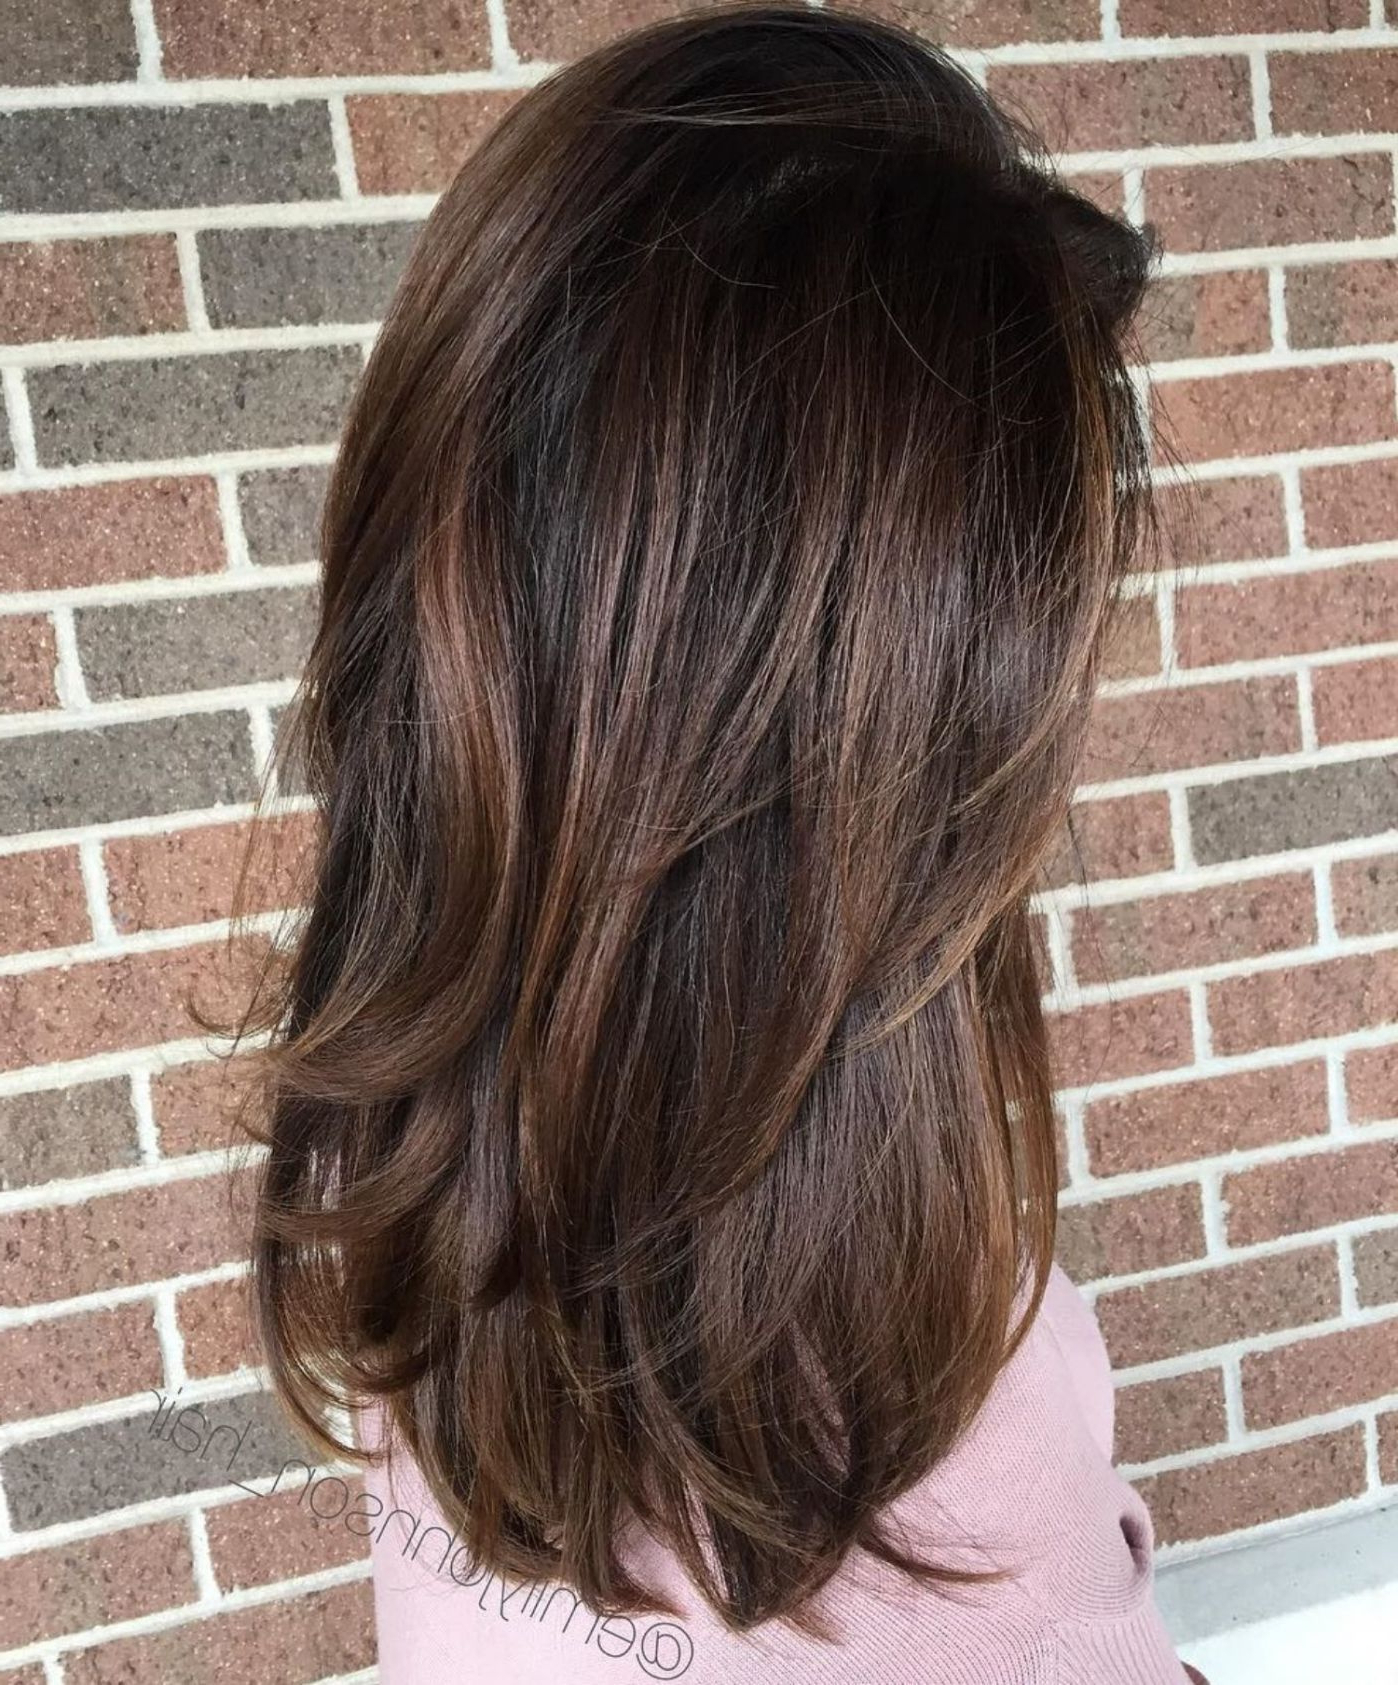 Widely Used Long Layered Light Chocolate Brown Haircuts In Hairstyles : Dark Brown Hair Medium Length Outstanding 70 Brightest (View 19 of 20)